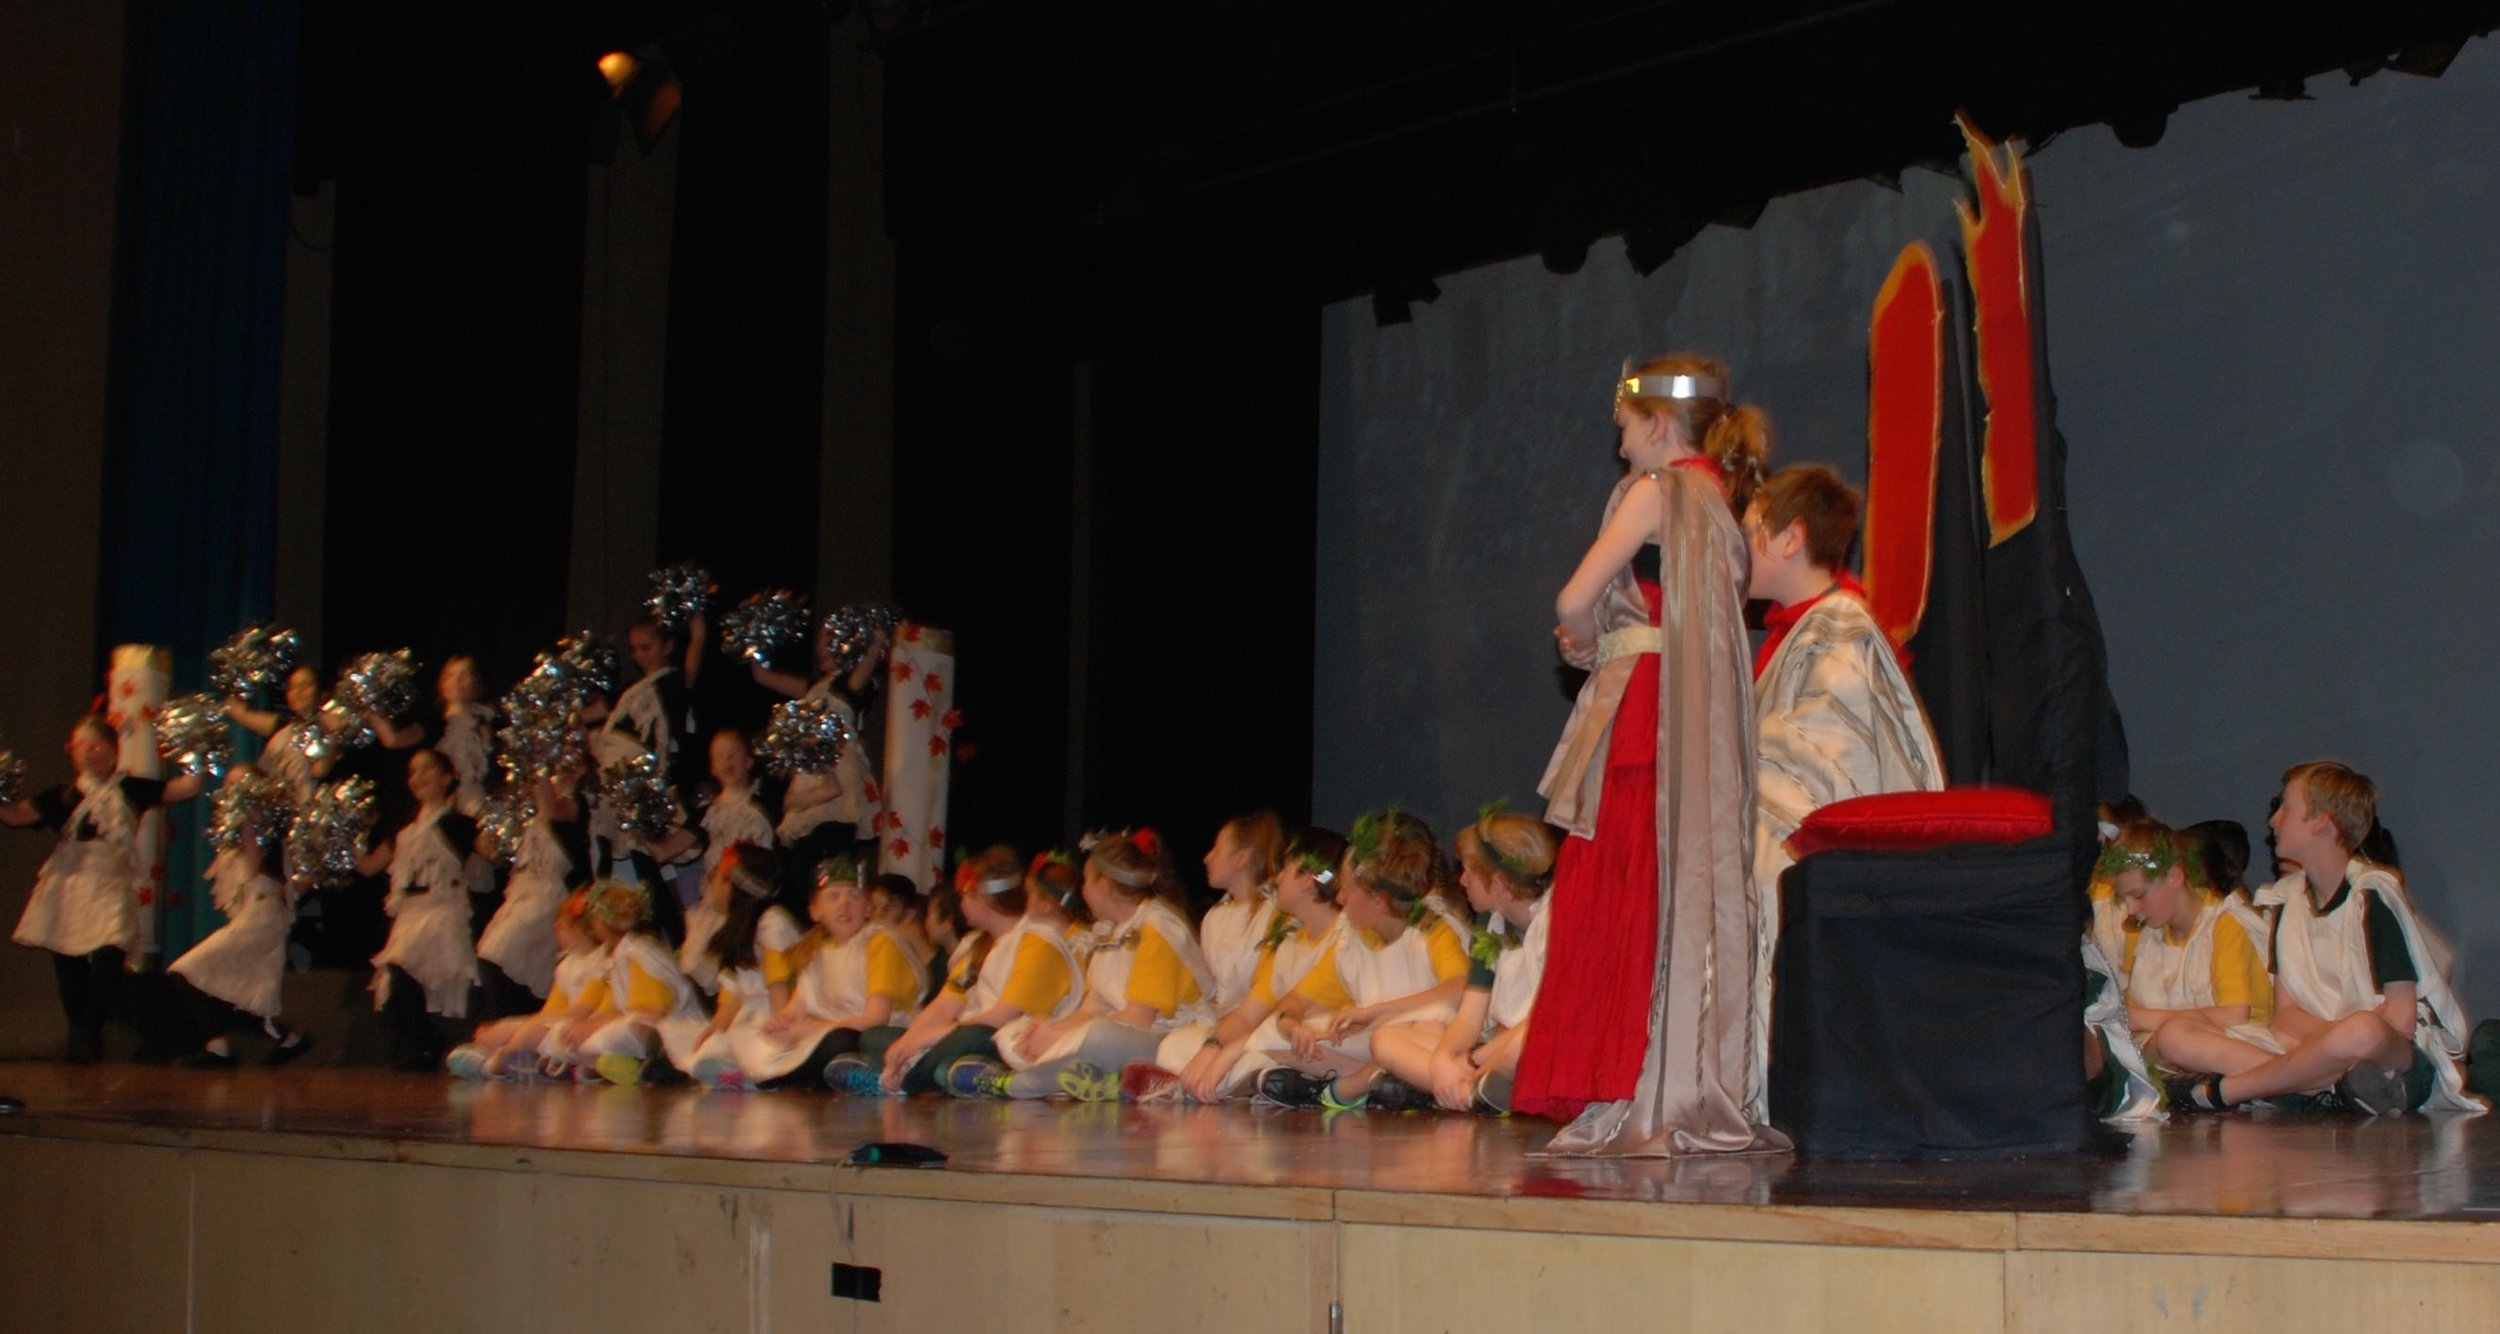 Emperor and Emporess receive a cheer from the roman audience.